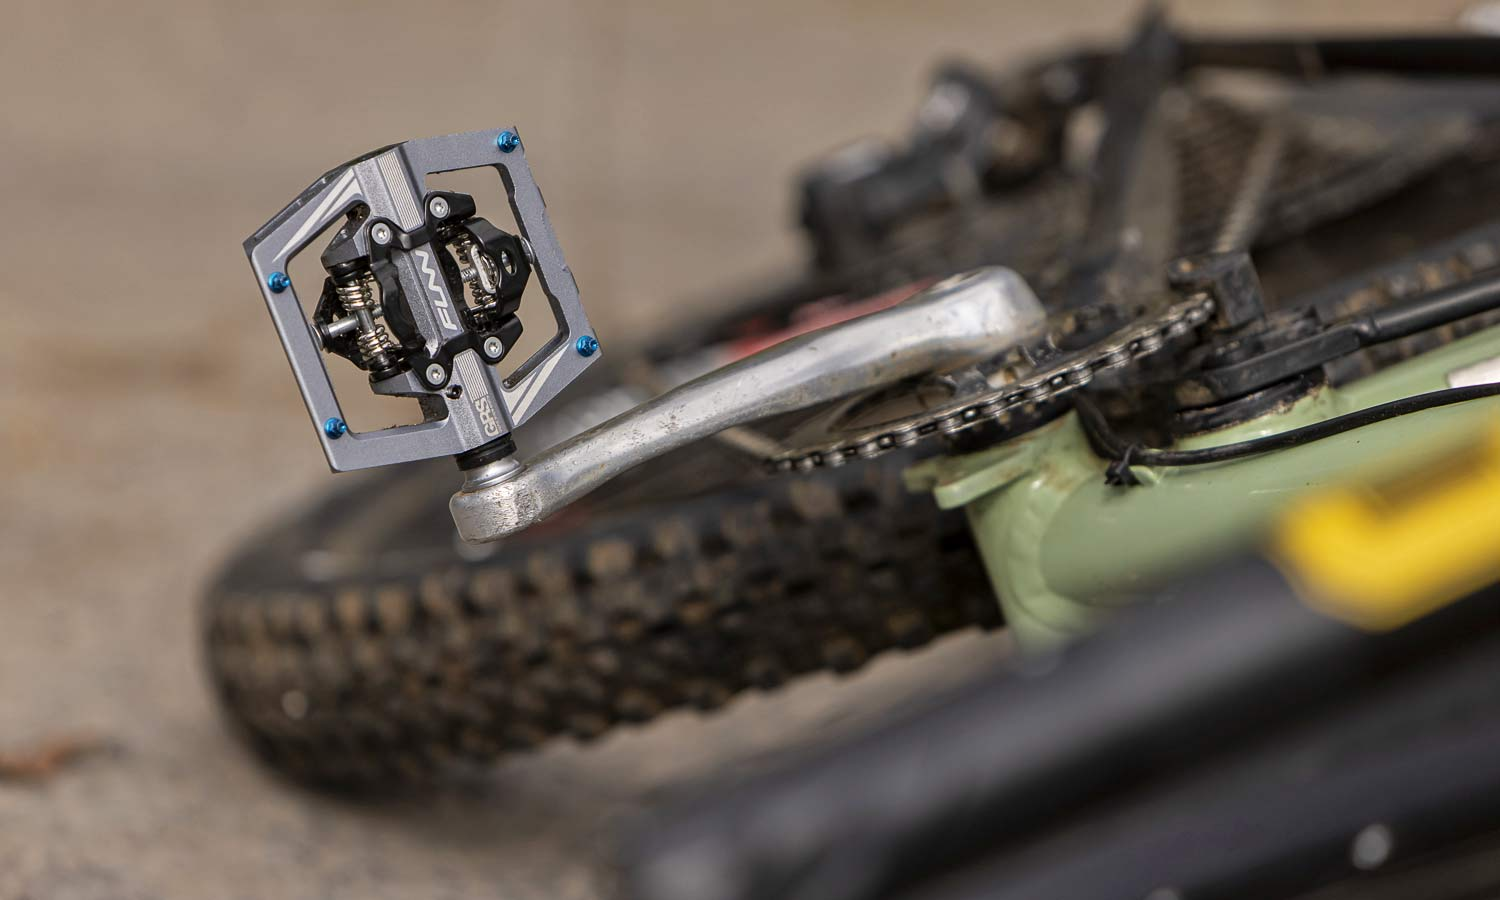 Funn Mamba S lighter combo clipless platform clipless all-mountain bike pedals, ride photos by Jacob Gibbins Openwide Agency